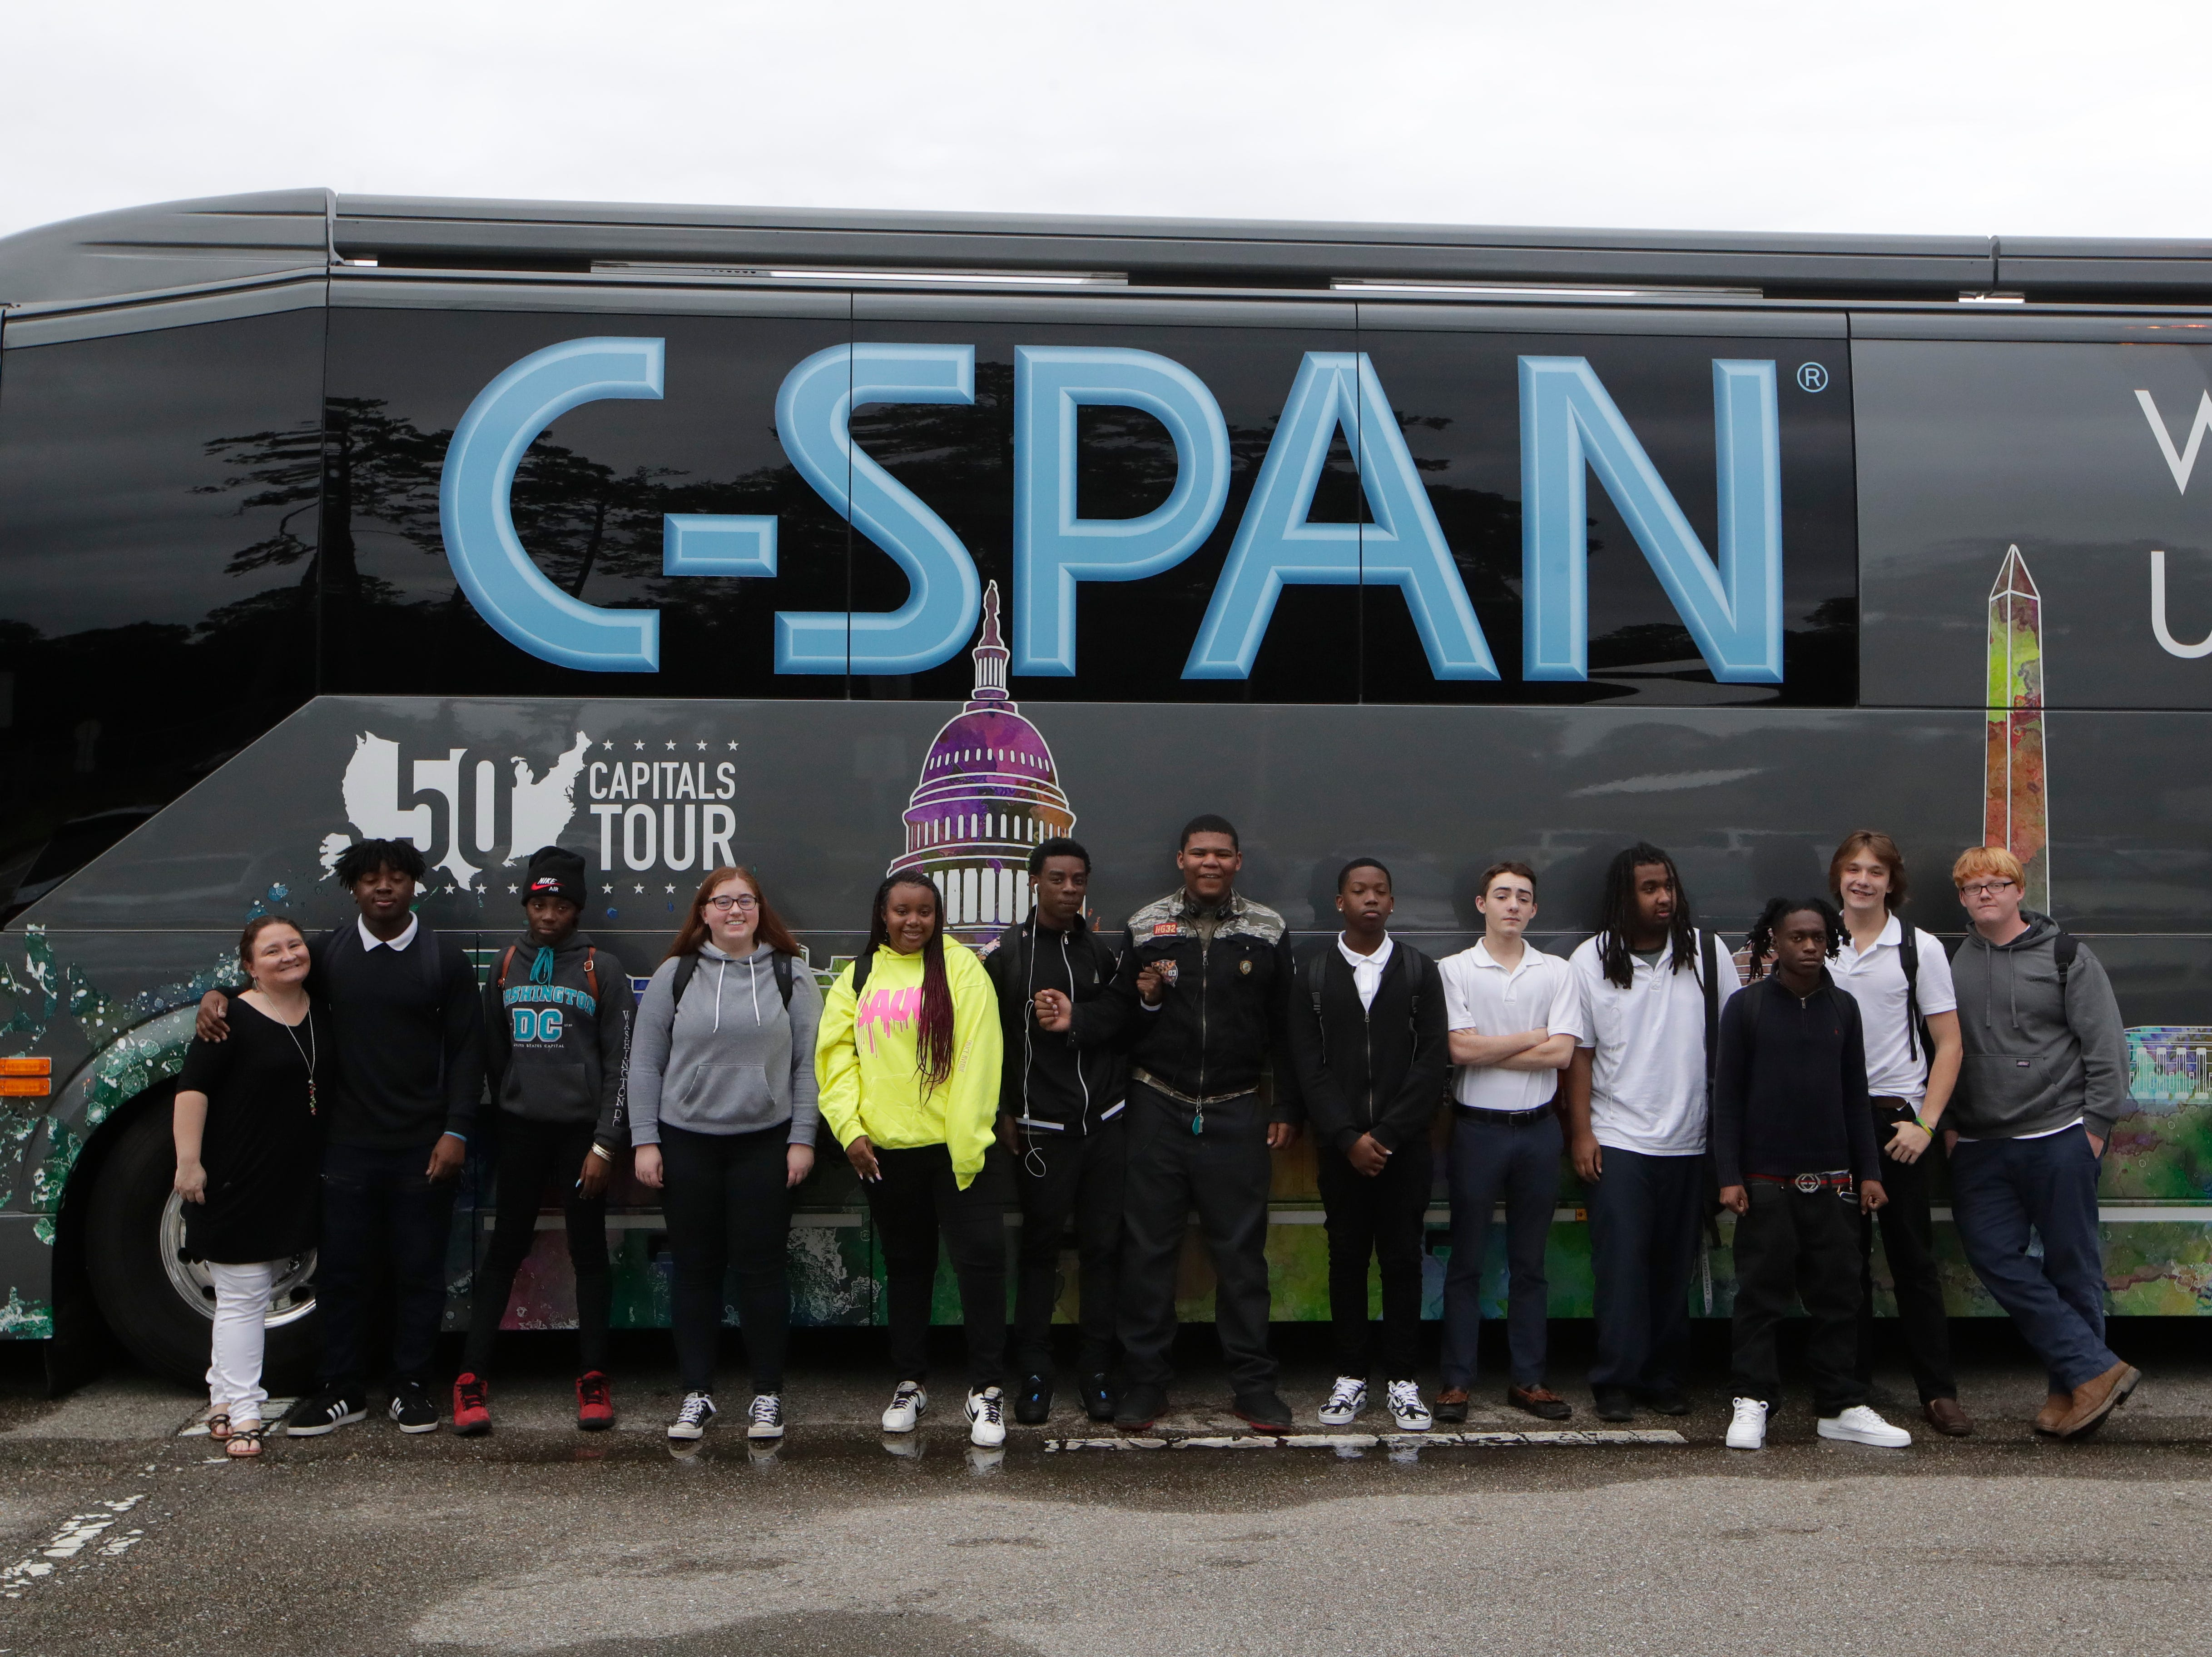 Students from Success Academy's April Gibbs government class for junior and seniors pose in front of the C-SPAN bus as it makes a stop at the Ghazvini Learning Center in Tallahassee, allowing Success Academy and Second Chance students to come aboard the bus and learn about C-SPAN Monday, Dec. 3, 2018.